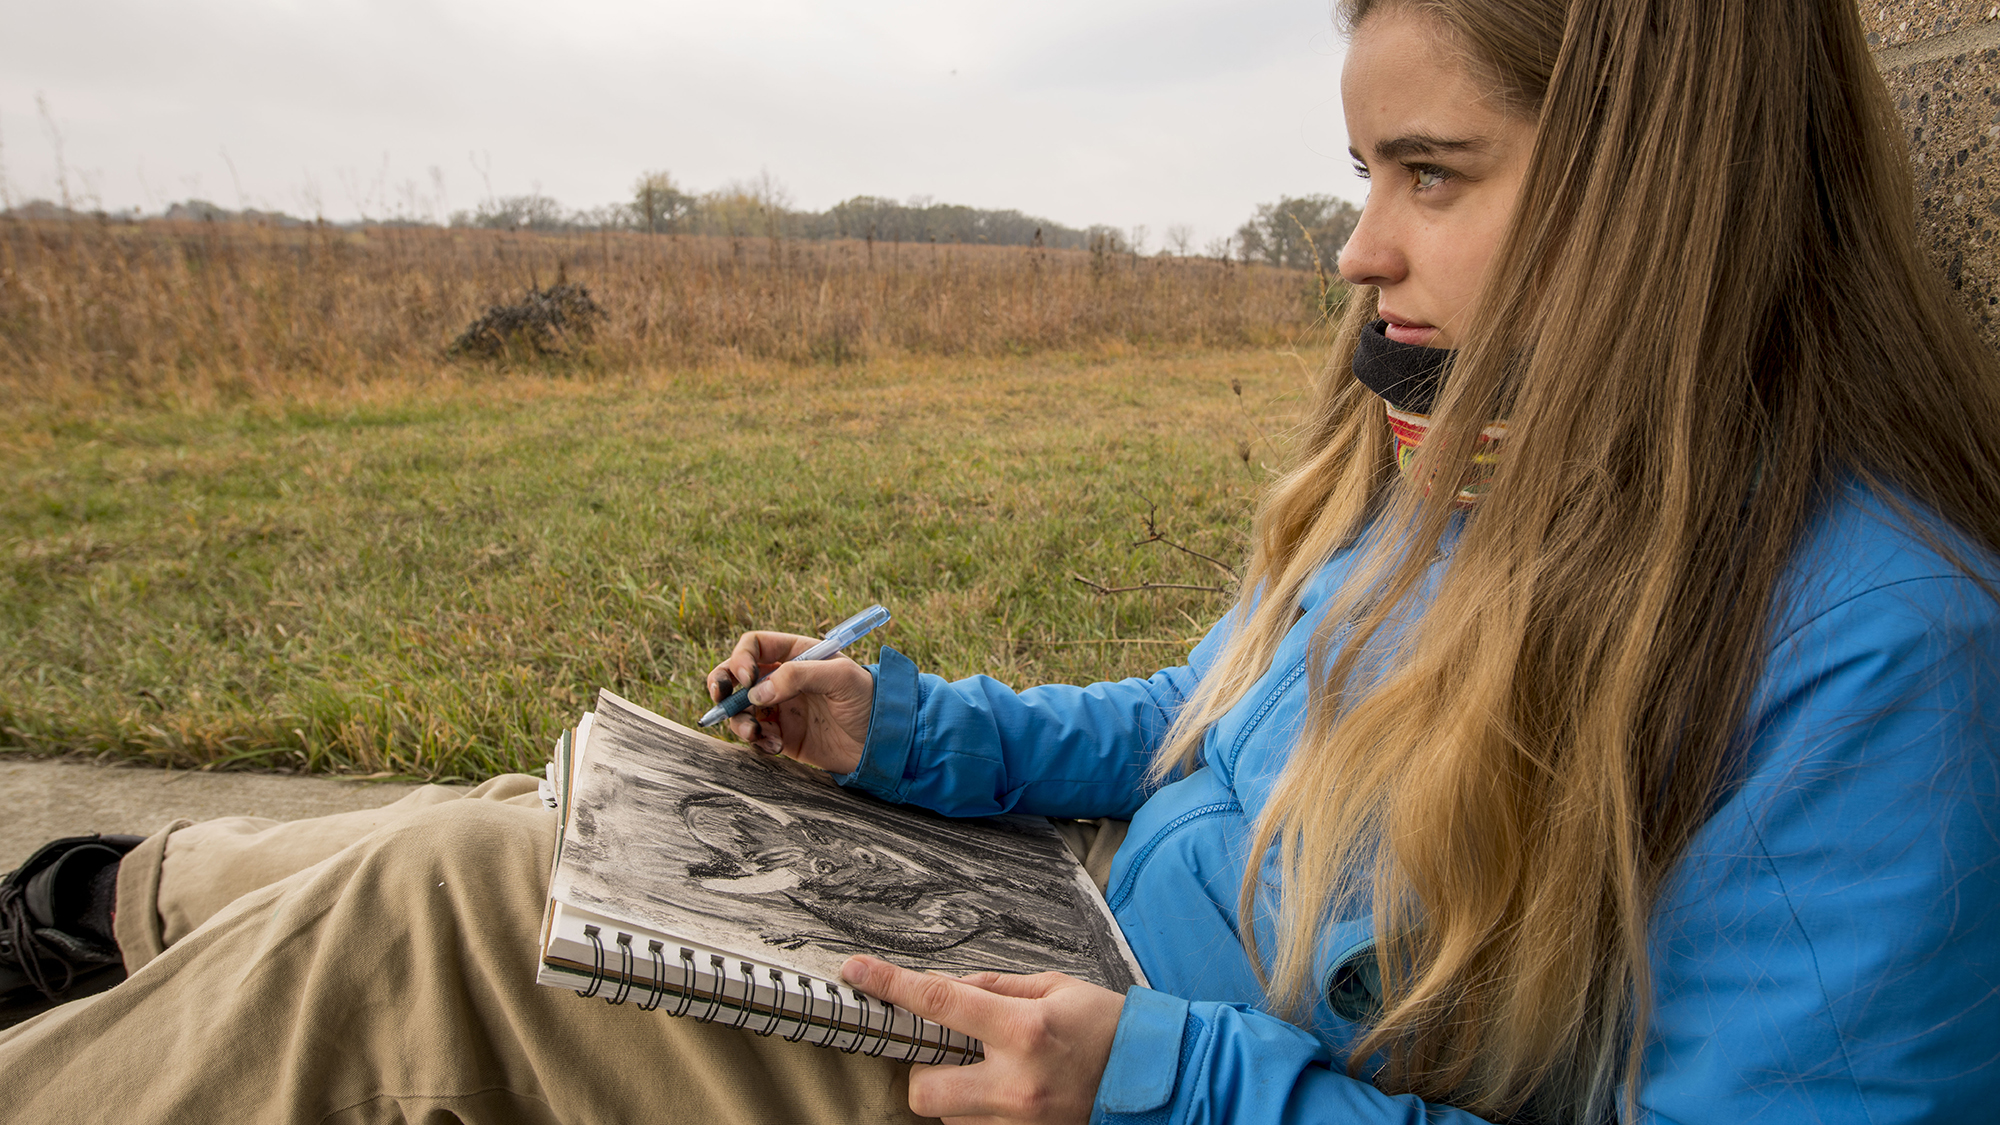 Students in Lee Running, Associate Professor of Art, drawing class use observational drawing techniques during a trip to the Conrad Evironmental Research Area